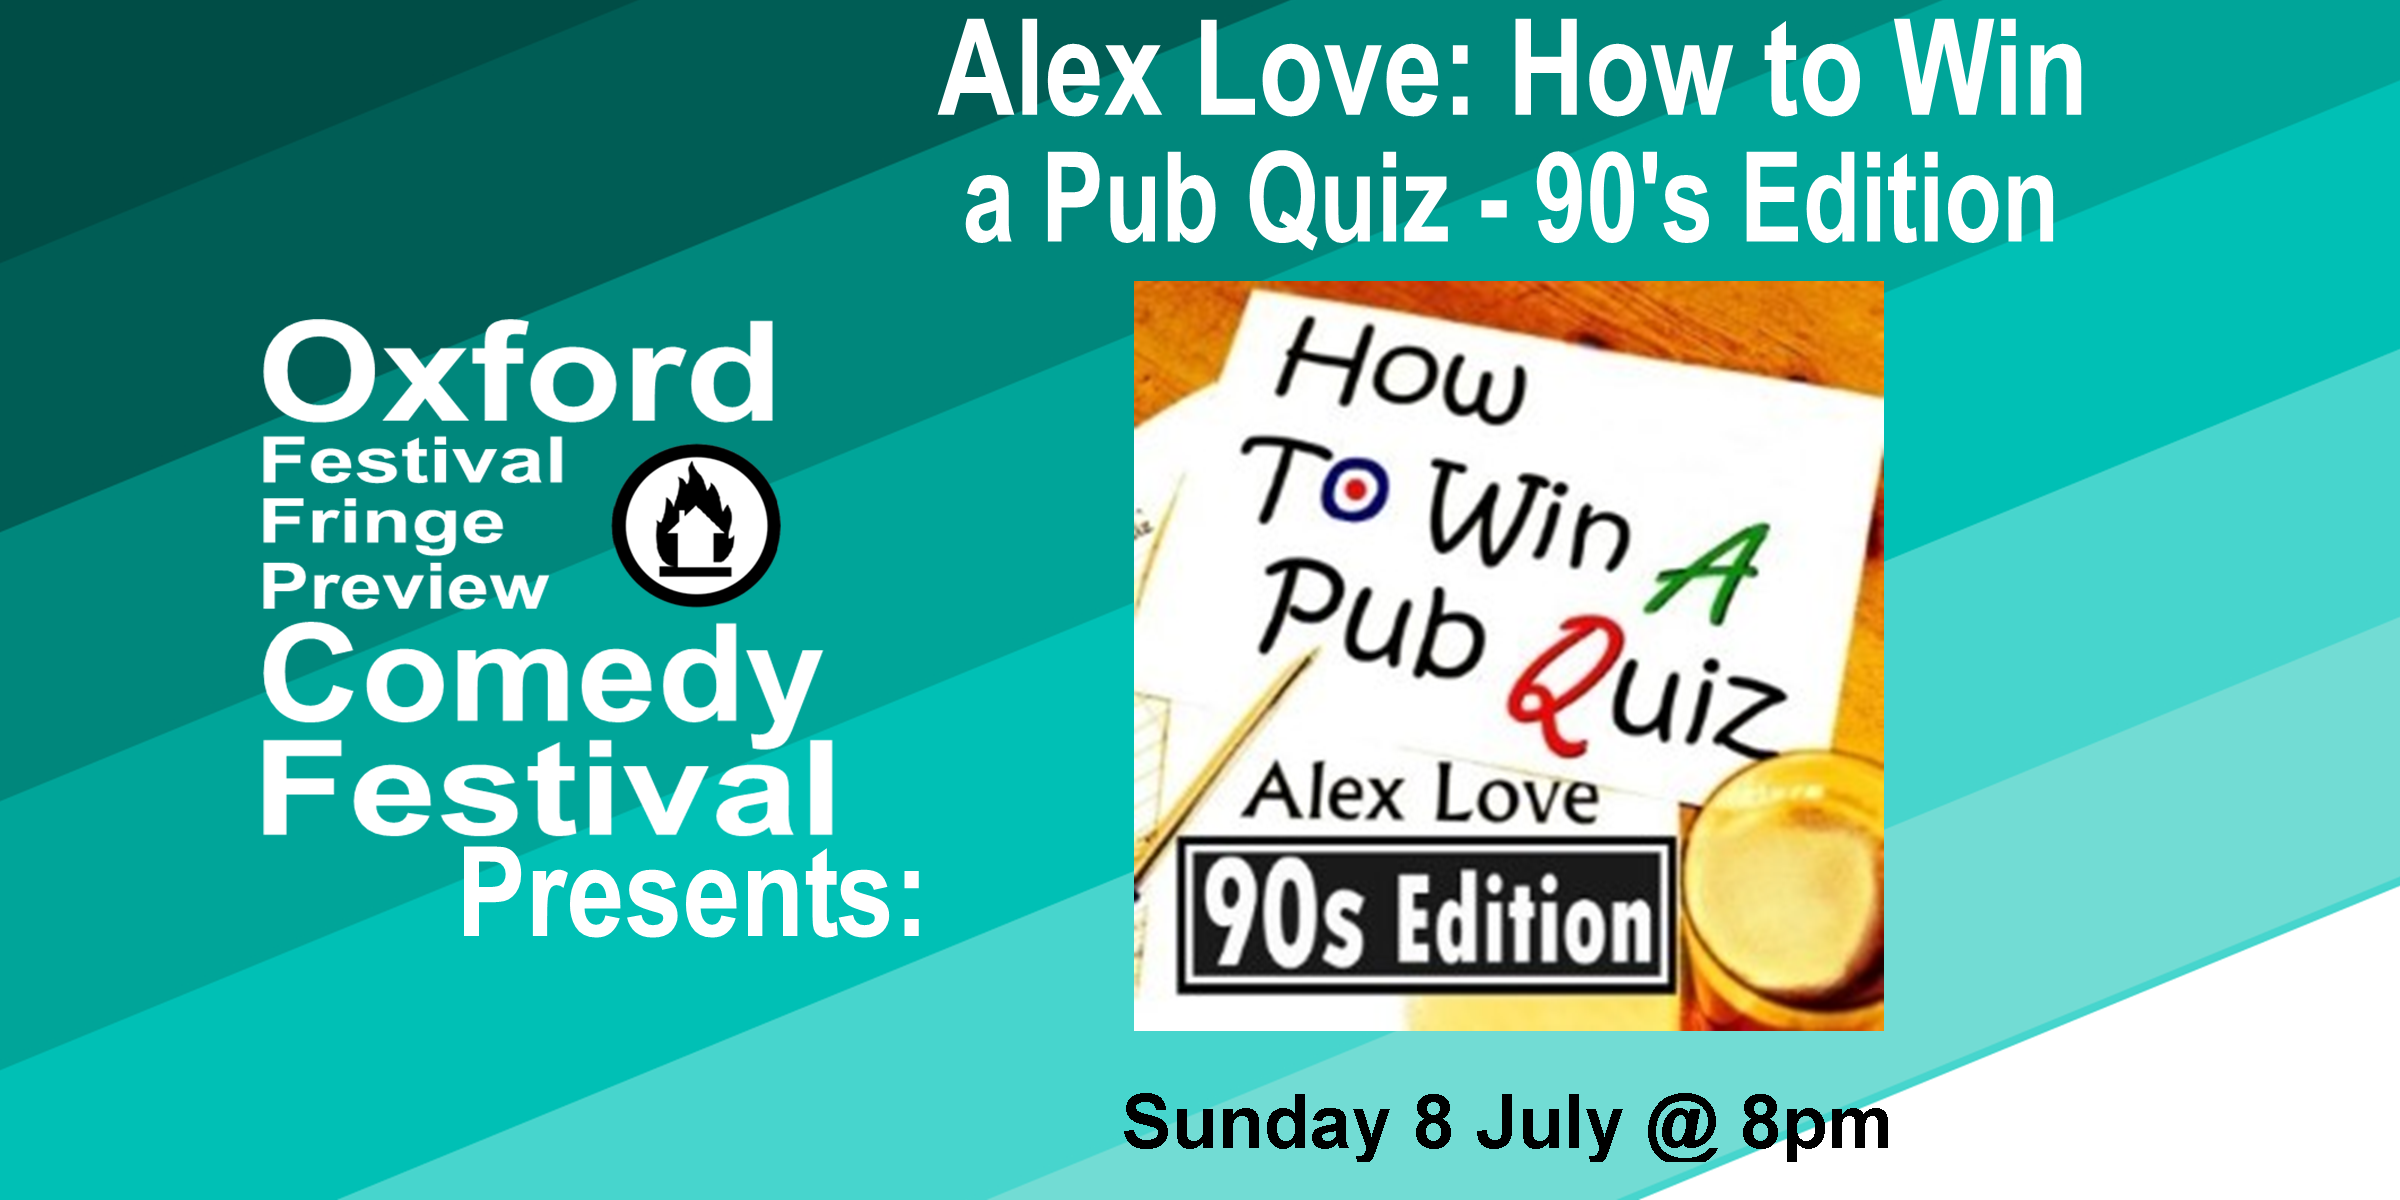 Highly interactive show that's part stand-up, part actual pub quiz. Expand your trivia, compete against other teams, win prizes. Returning for fifth year; this year's theme is the 90s. Sold out 2016-2017 at the Edinburgh Fringe. 'Alex Love is a confident and relaxed performer who makes his audience feel at ease... Whether winners or losers, everyone left happy' **** ( BroadwayBaby.com ). 'That the energy and humour are maintained throughout is testament to Love's ability to work an audience. A brilliantly fun show packed full of running gags and ad-libs' ( DenofGeek.com ). **** ( One4Review.co.uk ).  Doors at 7:30/Show at 8pm  60 minutes   Get Your Tickets Here!